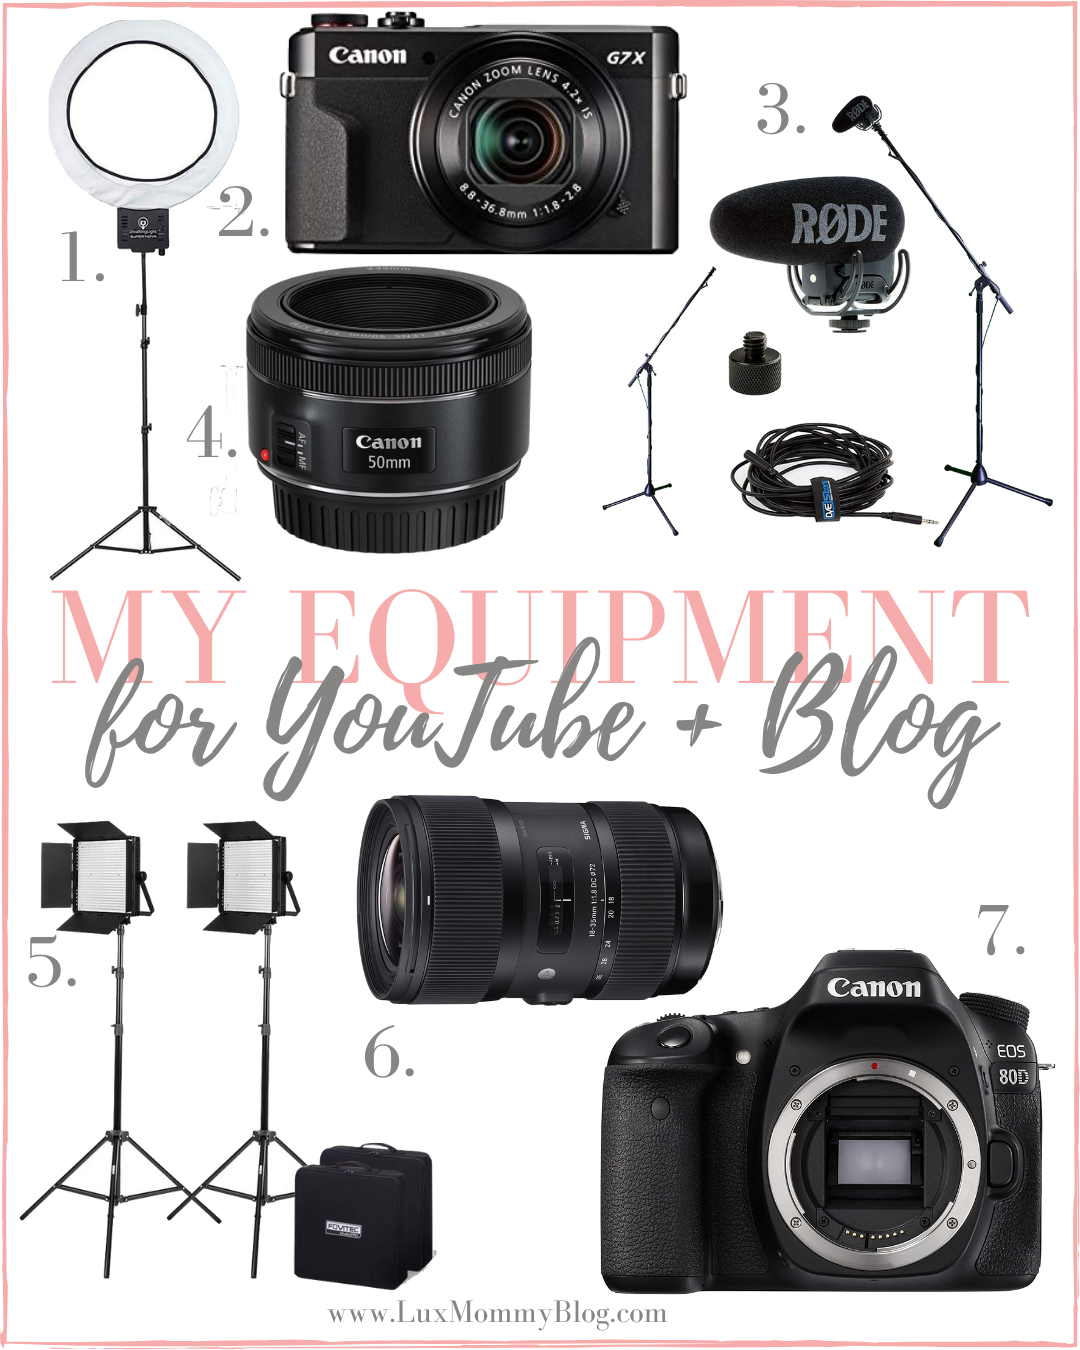 Houston top fashion blogger shares the filming and lighting equipment used for her blog and youtube channel.